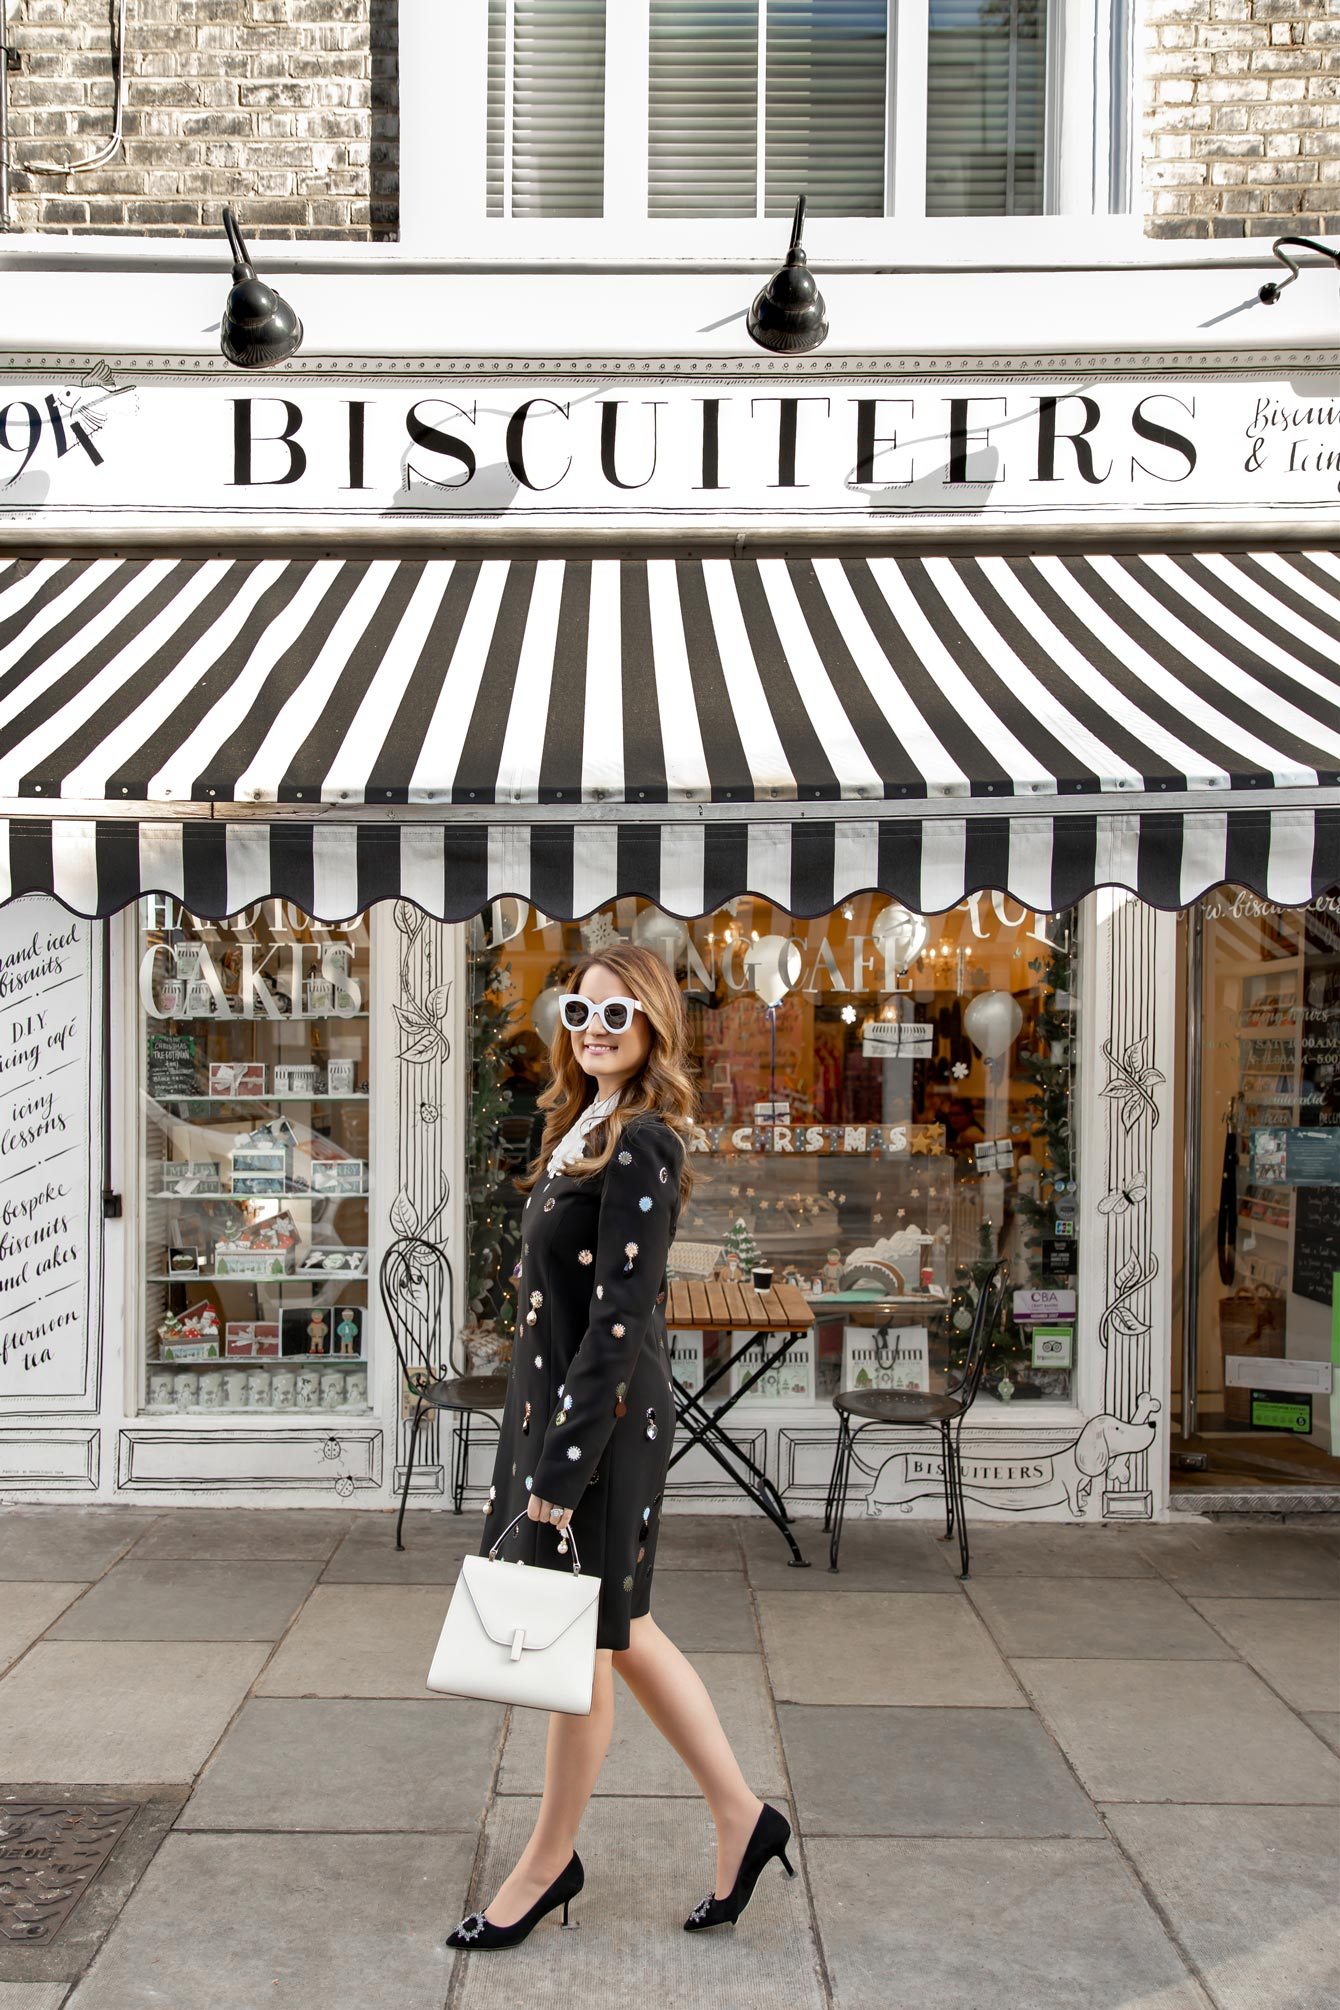 Biscuiteers London Notting Hill